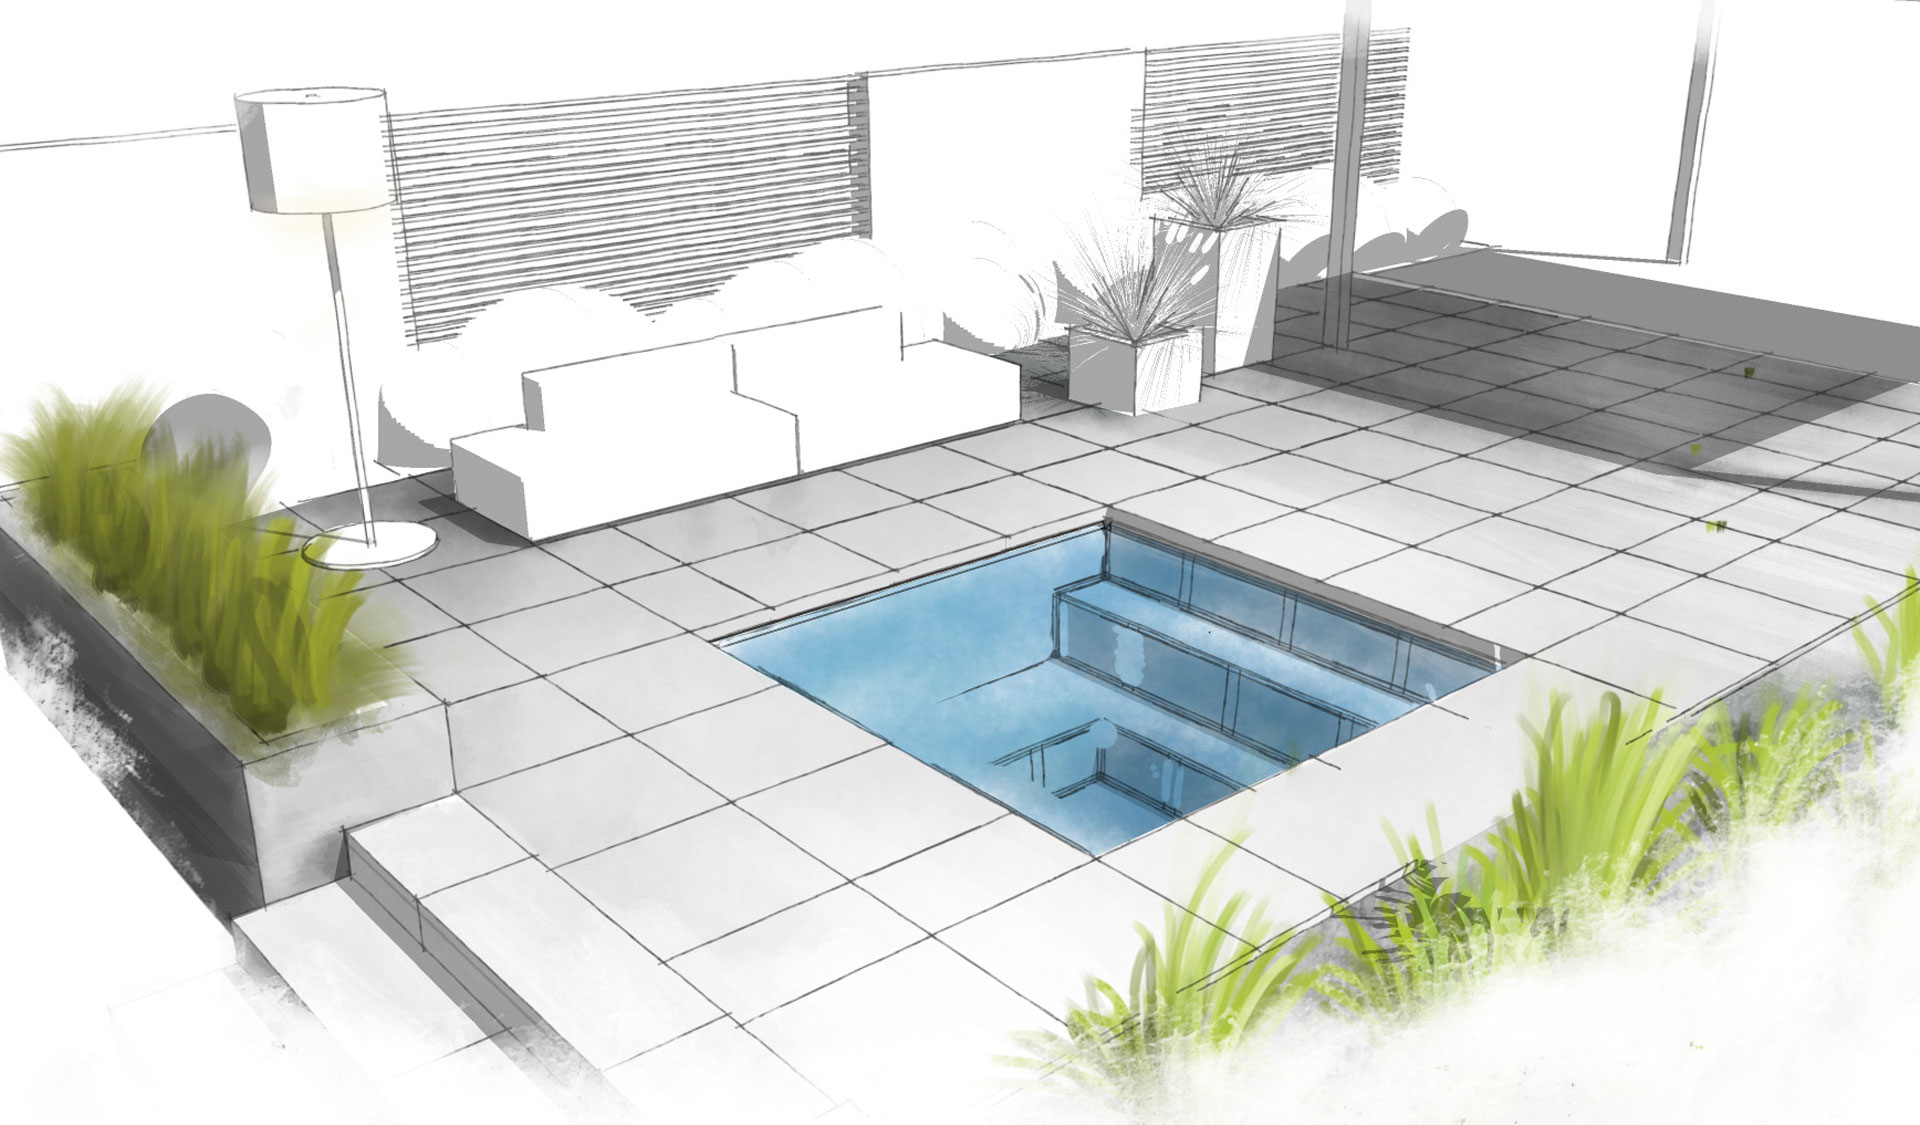 c side pool 5 - Pools & Sauna